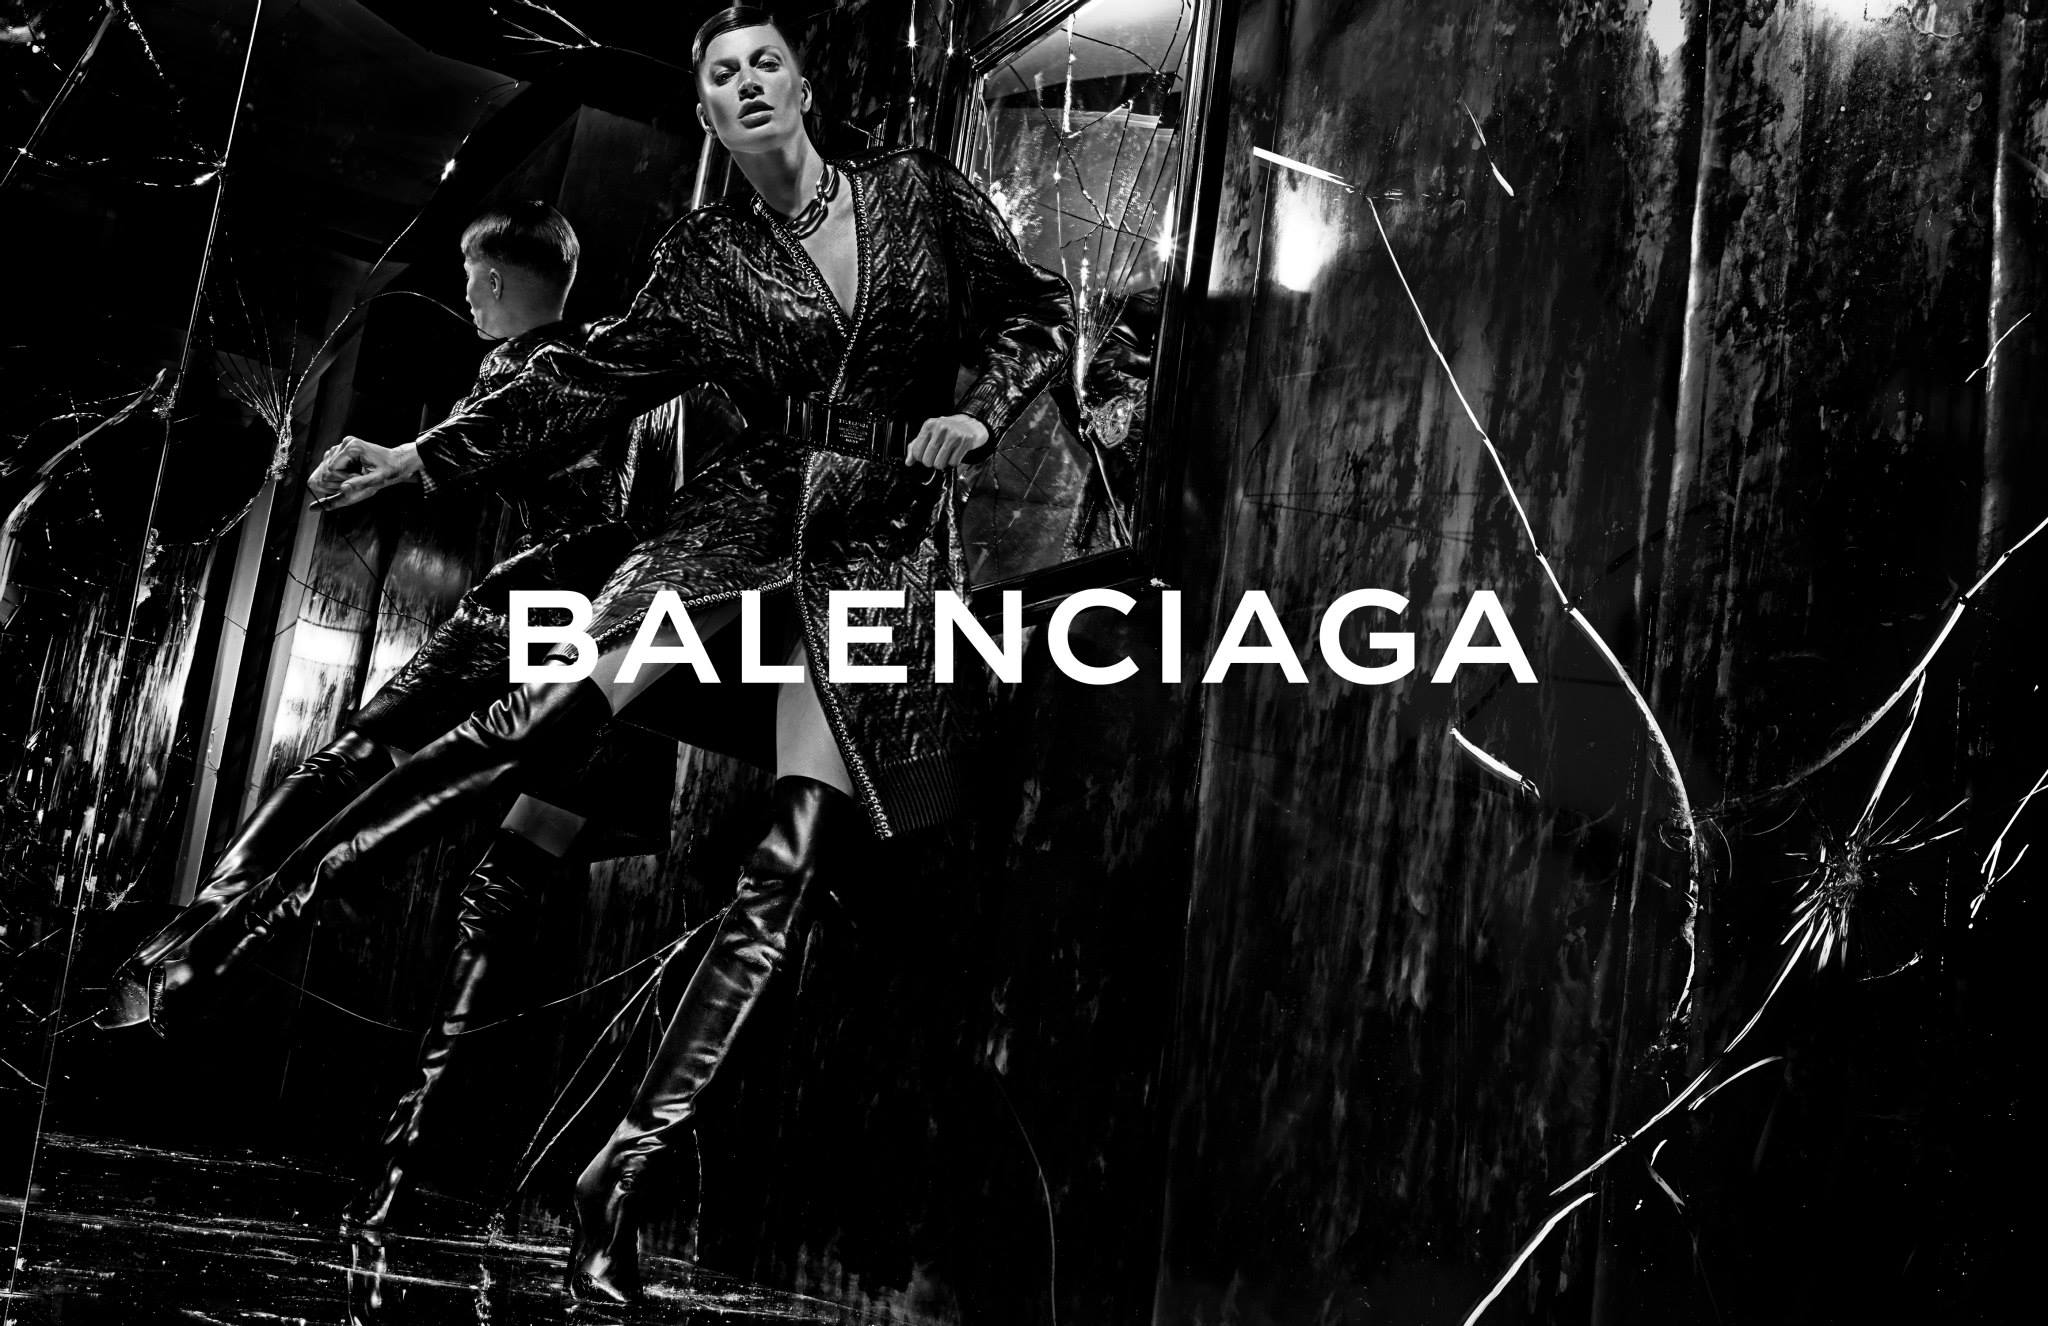 gisele-bc3bcndchen-by-steven-klein-for-balenciaga-fall-winter-2014-20152